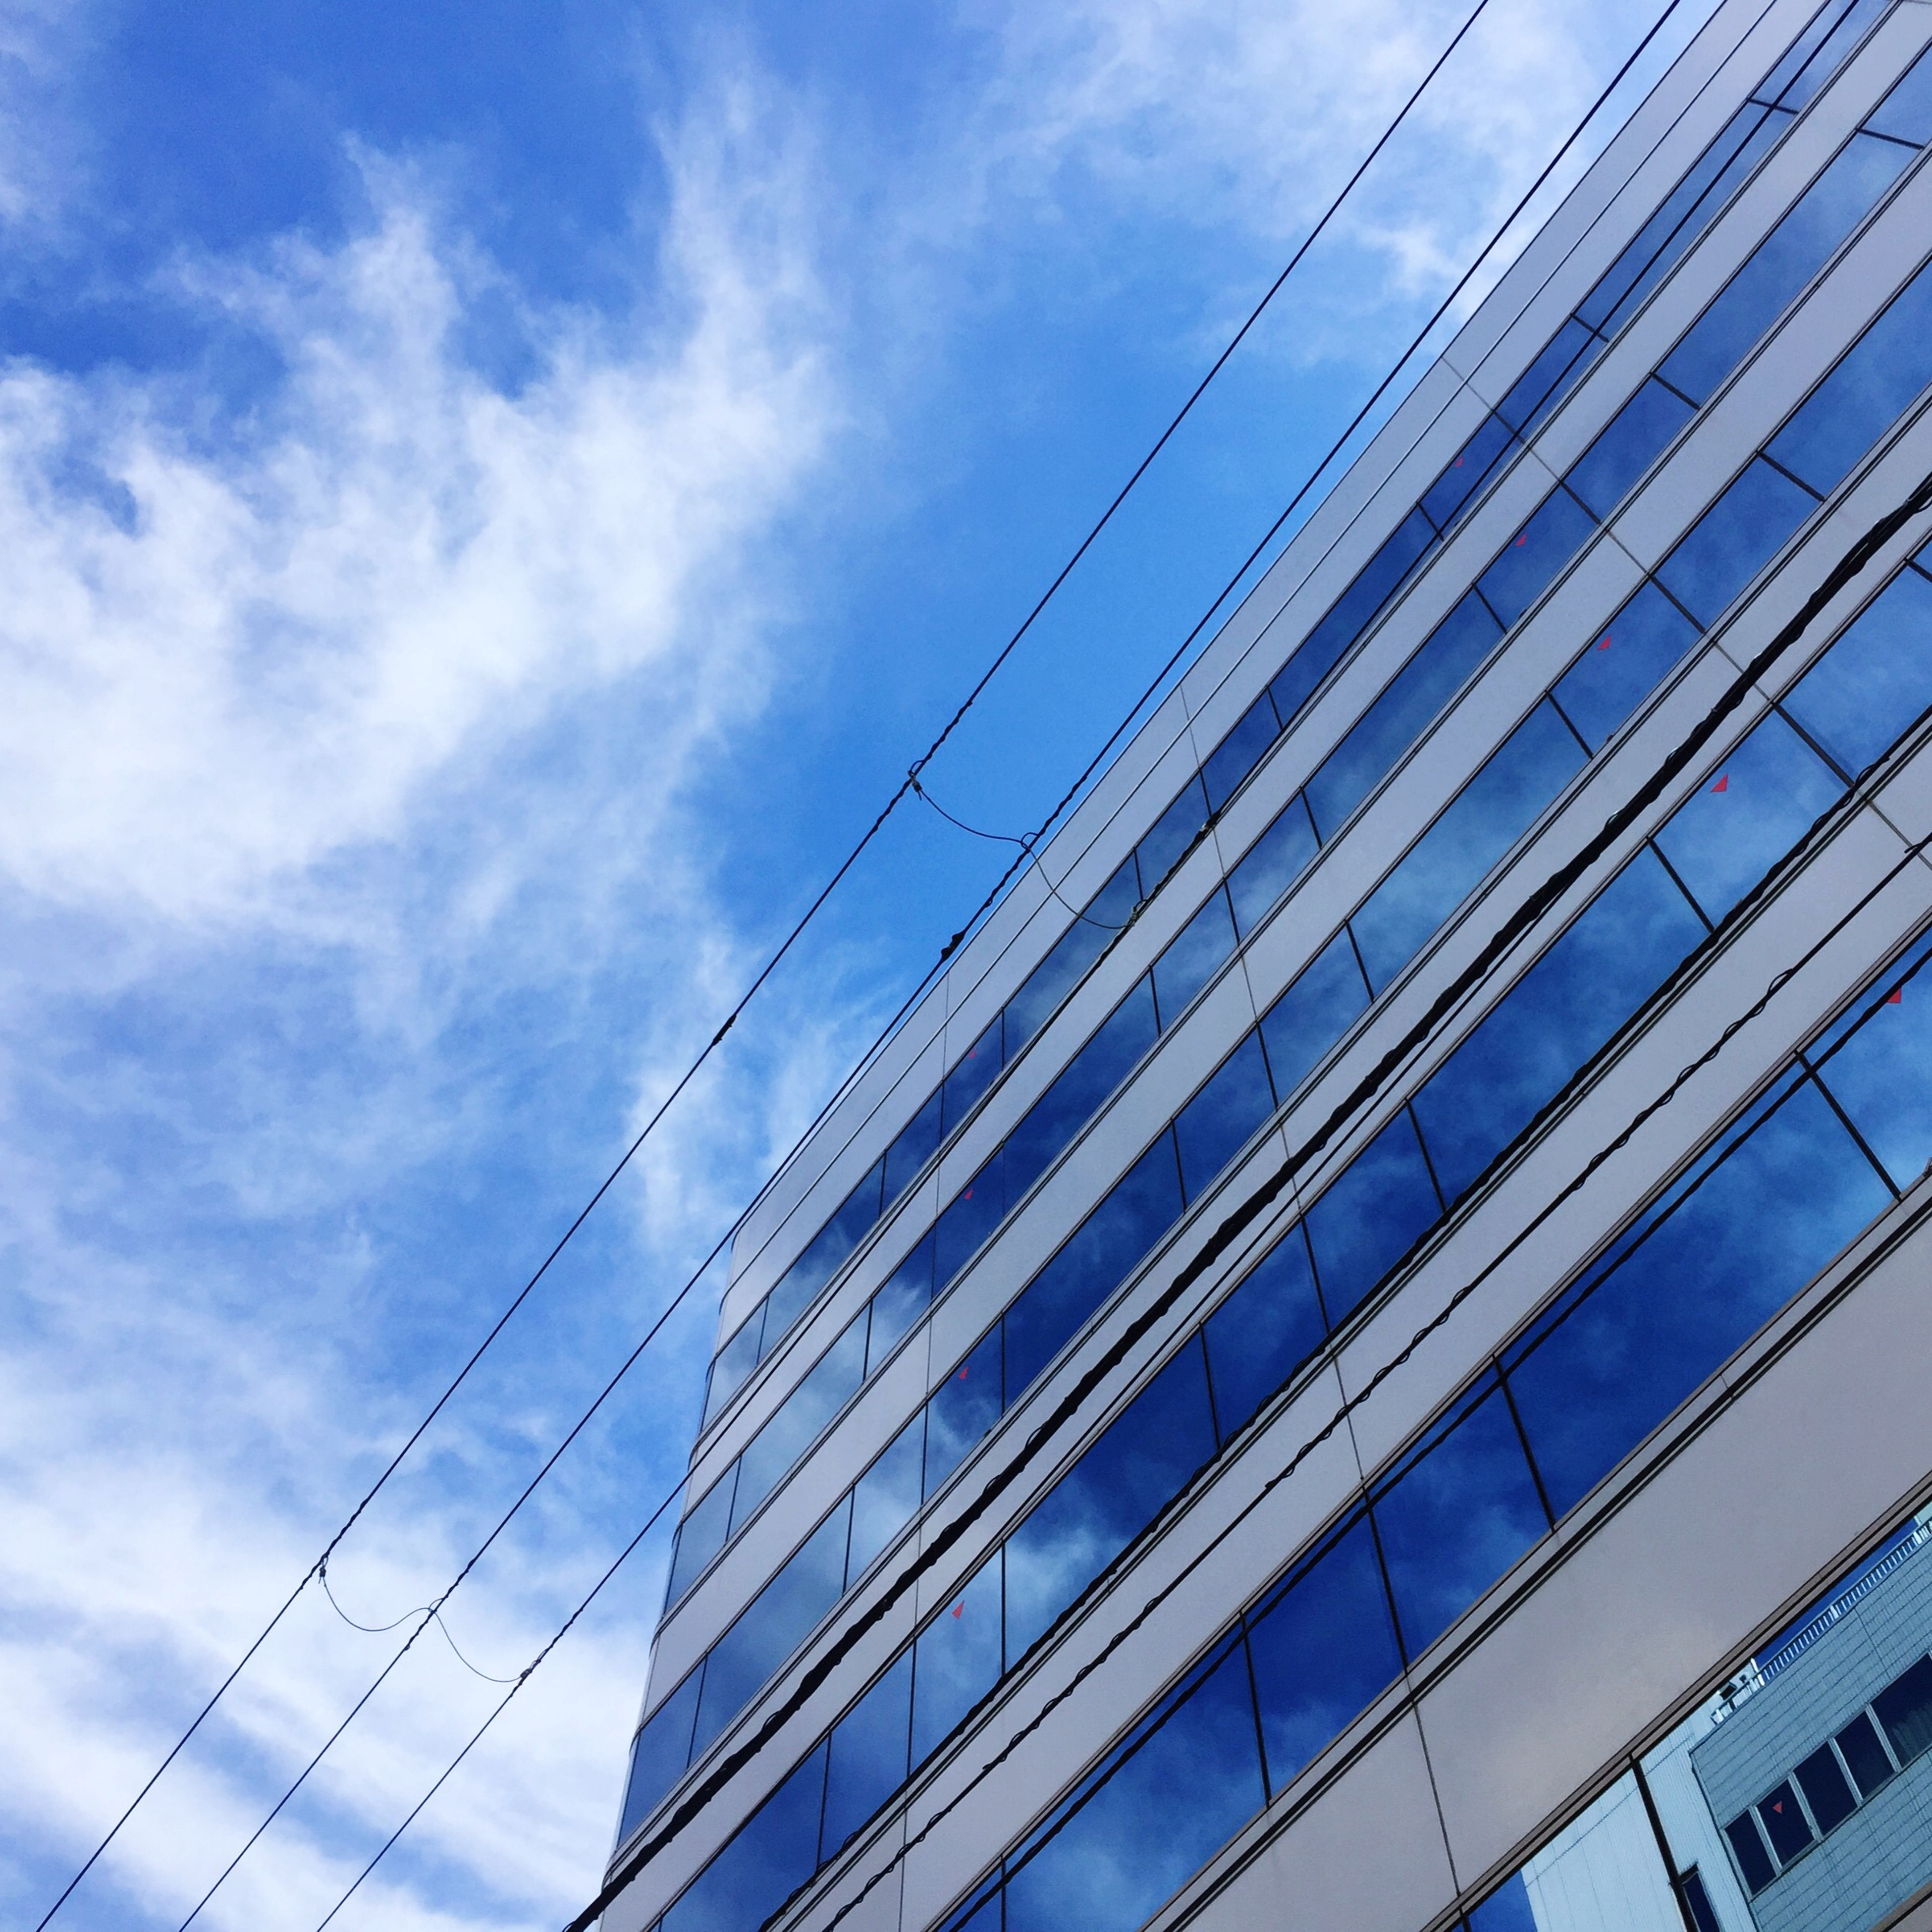 architecture, low angle view, built structure, building exterior, sky, modern, office building, city, skyscraper, tall - high, cloud - sky, building, tower, day, cloud, outdoors, glass - material, no people, reflection, tall